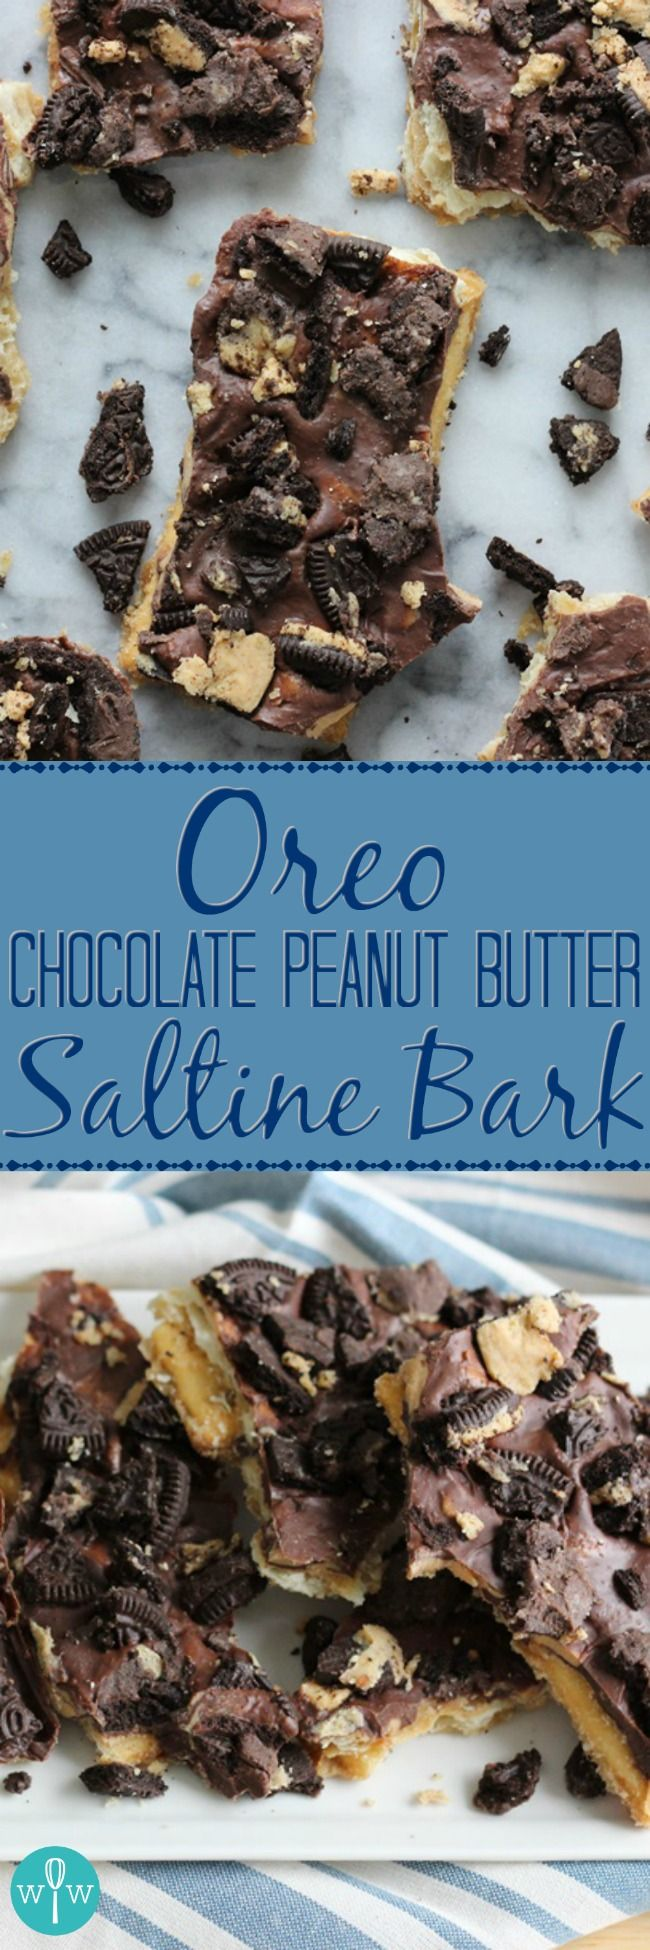 Oreo Chocolate Peanut Butter Saltine Bark - An over-the-top amazing snack recipe combining salty and sweet. Saltine crackers drenched in caramel, topped with melted chocolate peanut butter goodness, and sprinkled with Peanut Butter Oreo cookies.   www.worthwhisking.com